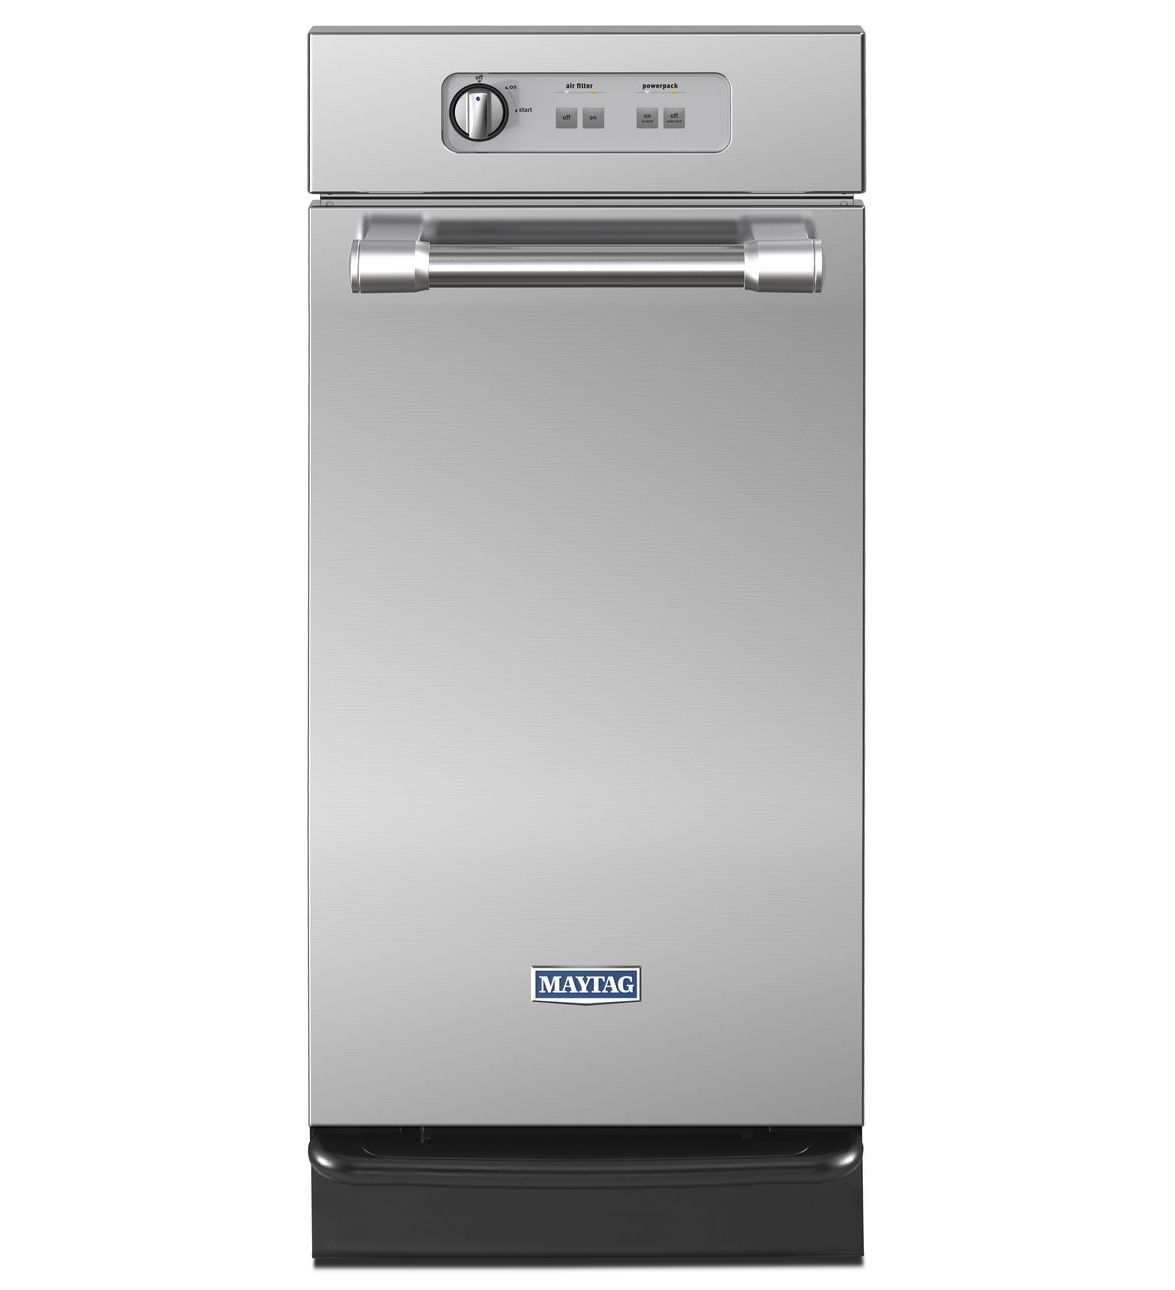 maytag trash compactor mtuc7500adm - reviews, prices, deals